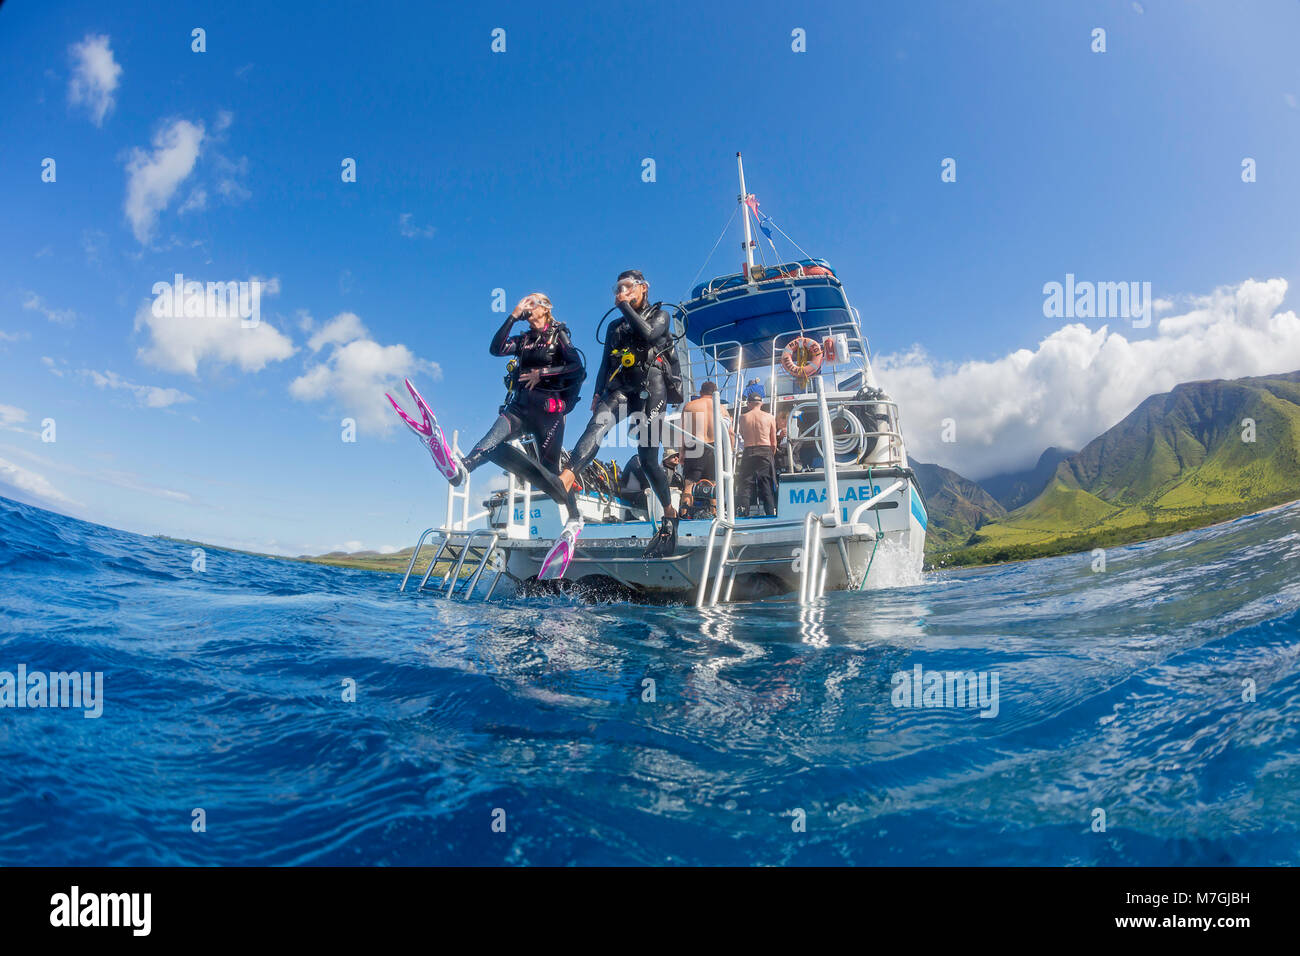 Divers (MR) step off a dive boat into the Pacific Ocean out from Ukumehame, Maui, Hawaii. - Stock Image